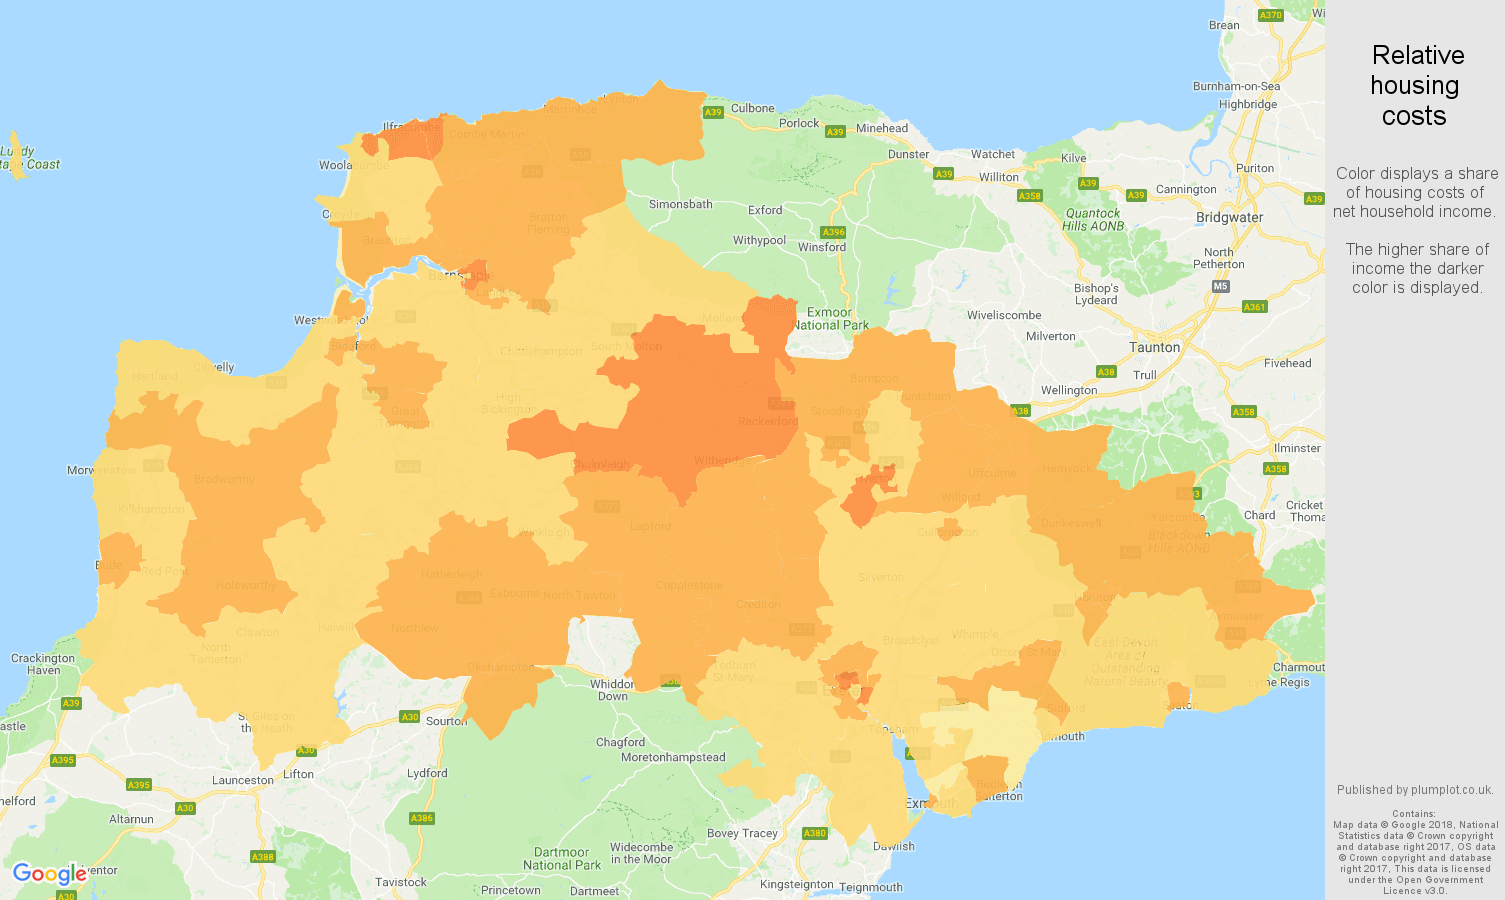 Exeter relative housing costs map